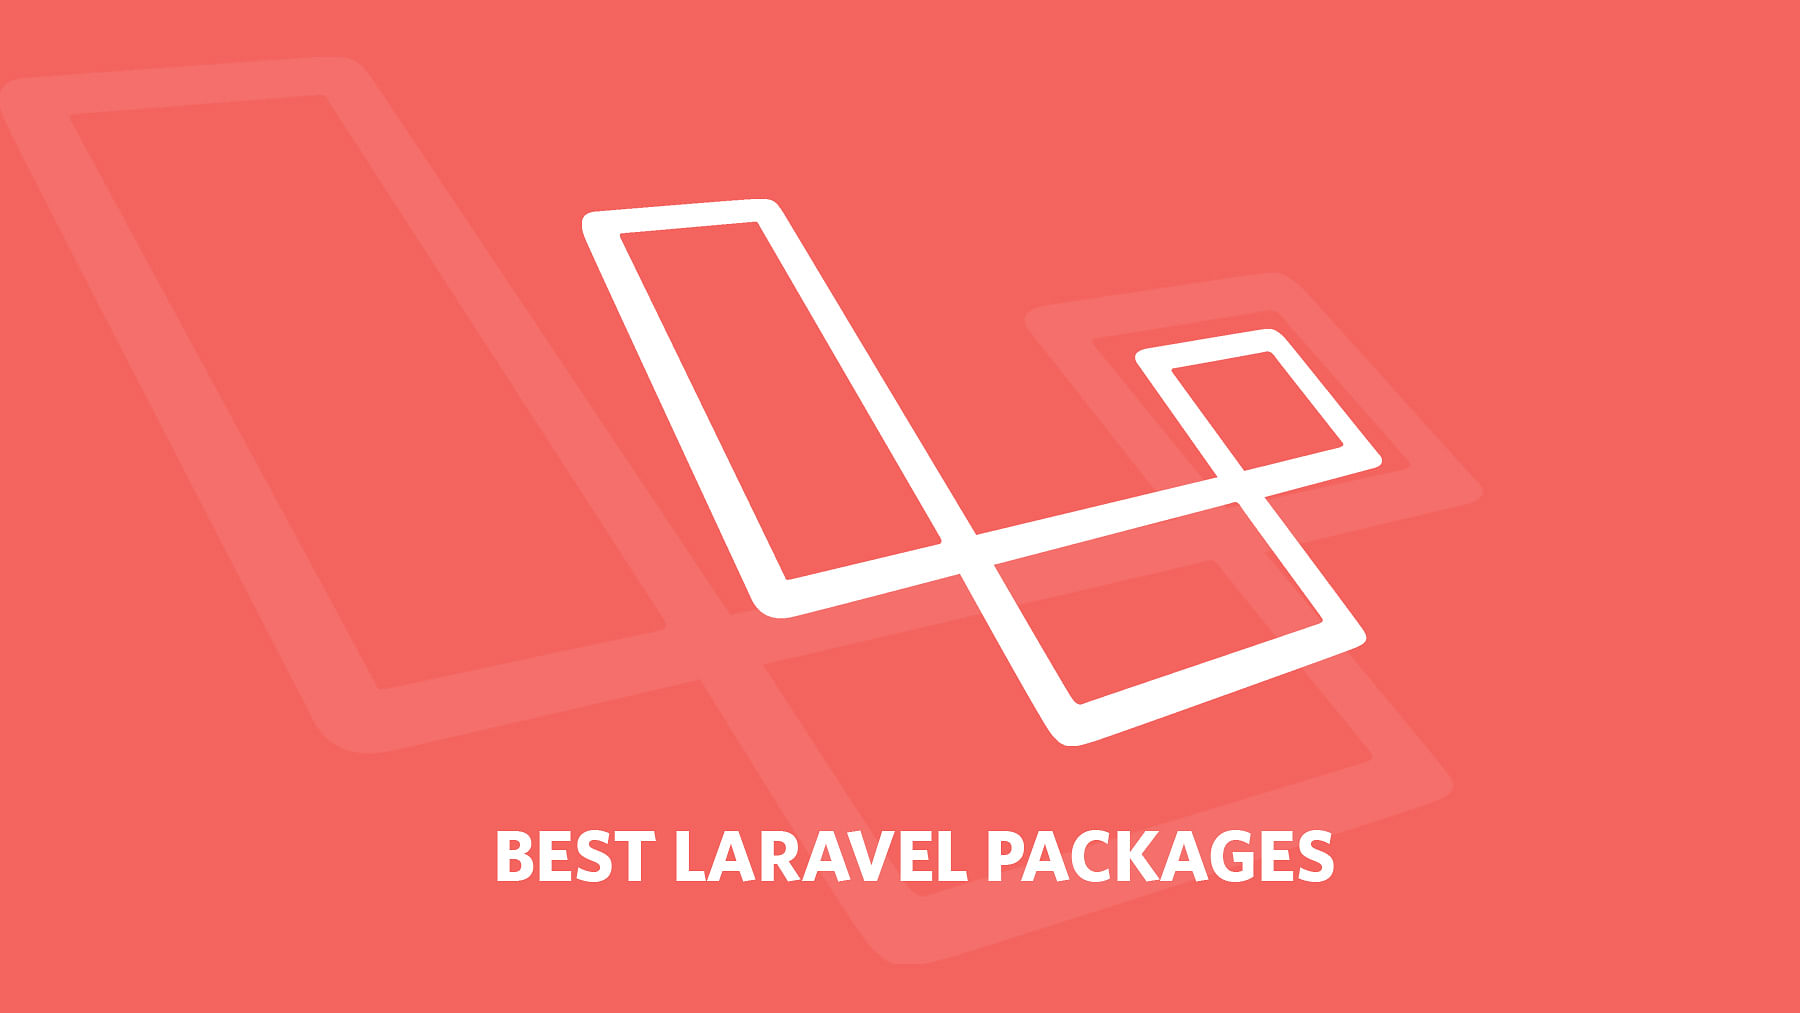 10 Best Laravel Packages You Should Know About